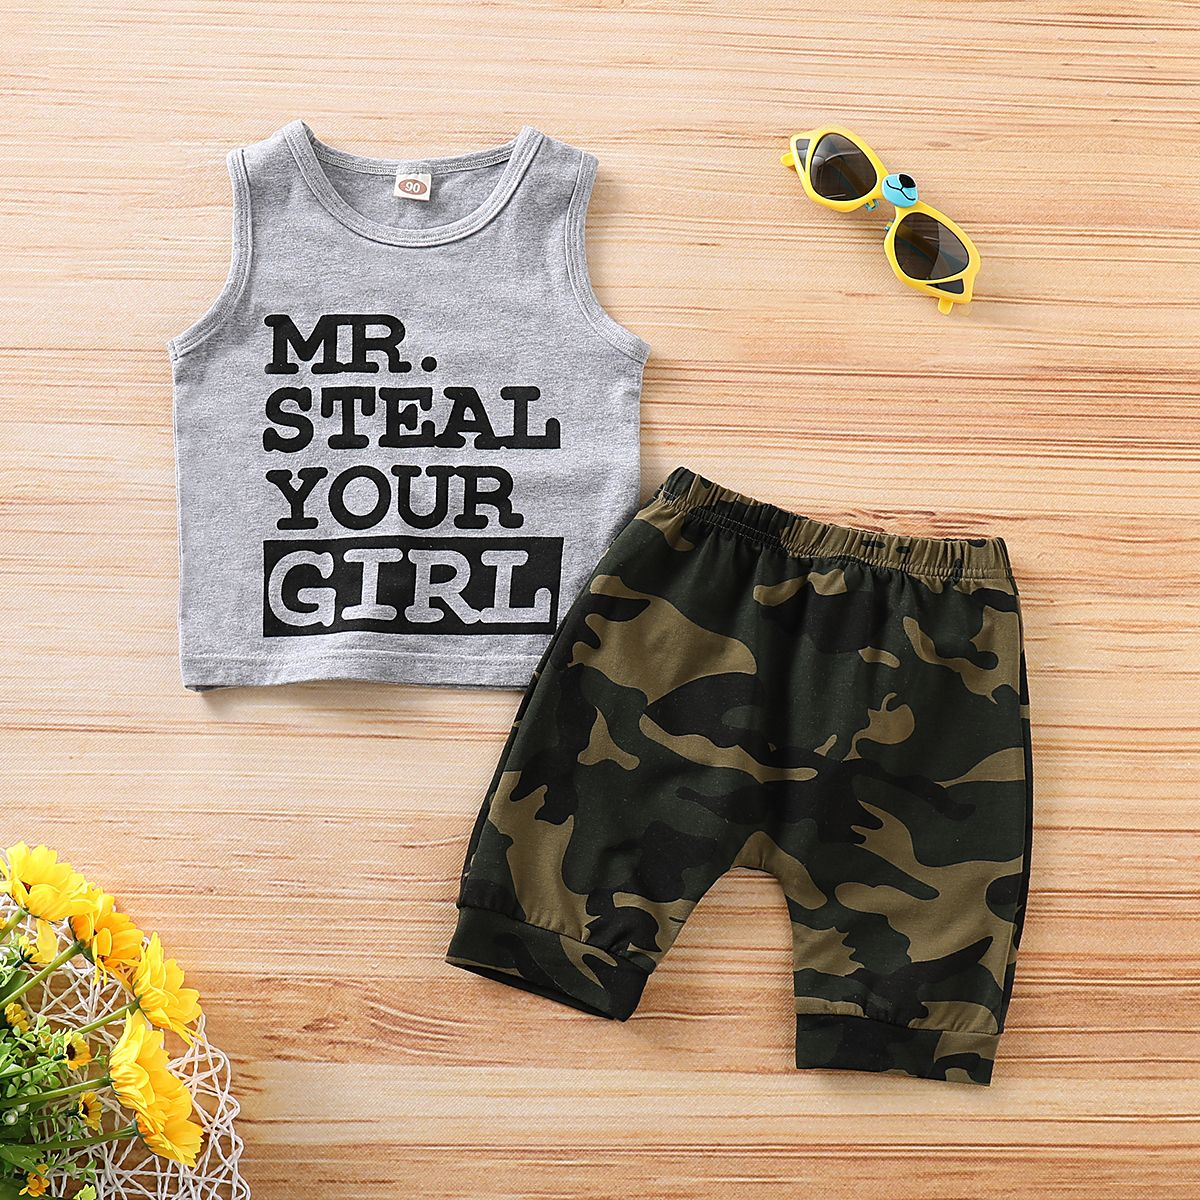 Camouflage Shorts Outfit Set Infant Baby Toddler Boy Clothes Mr Steal Your Girl Vest